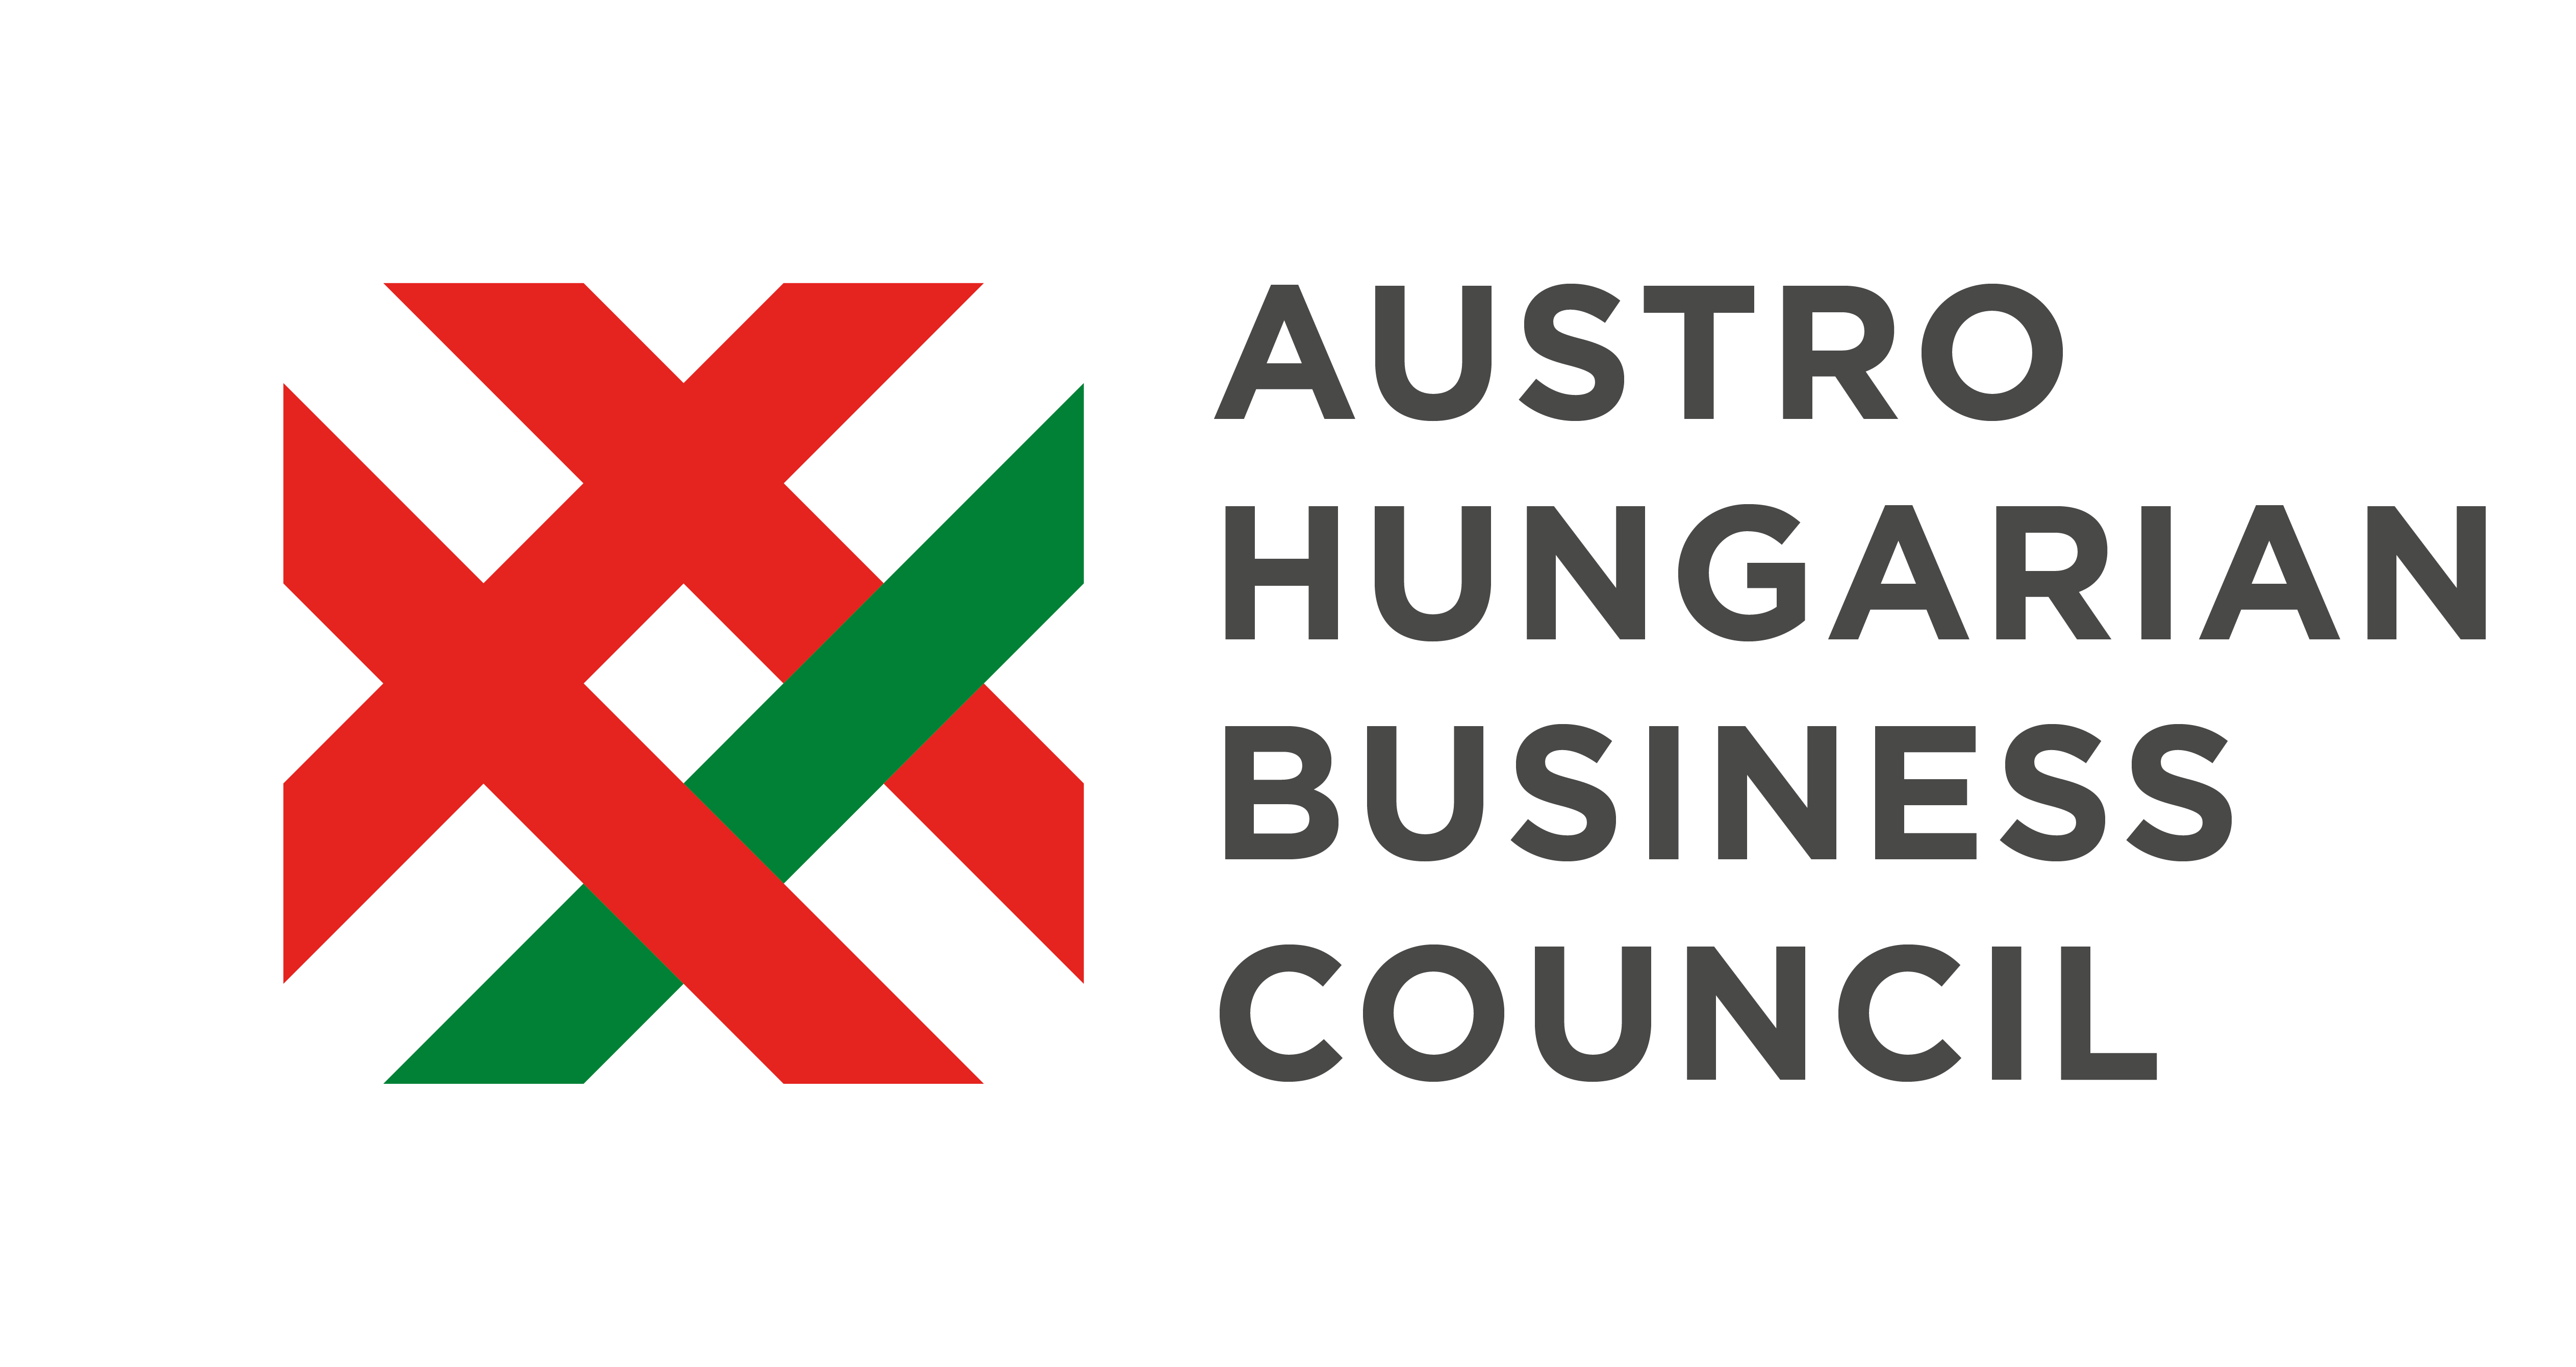 Austro Hungarian Business Council